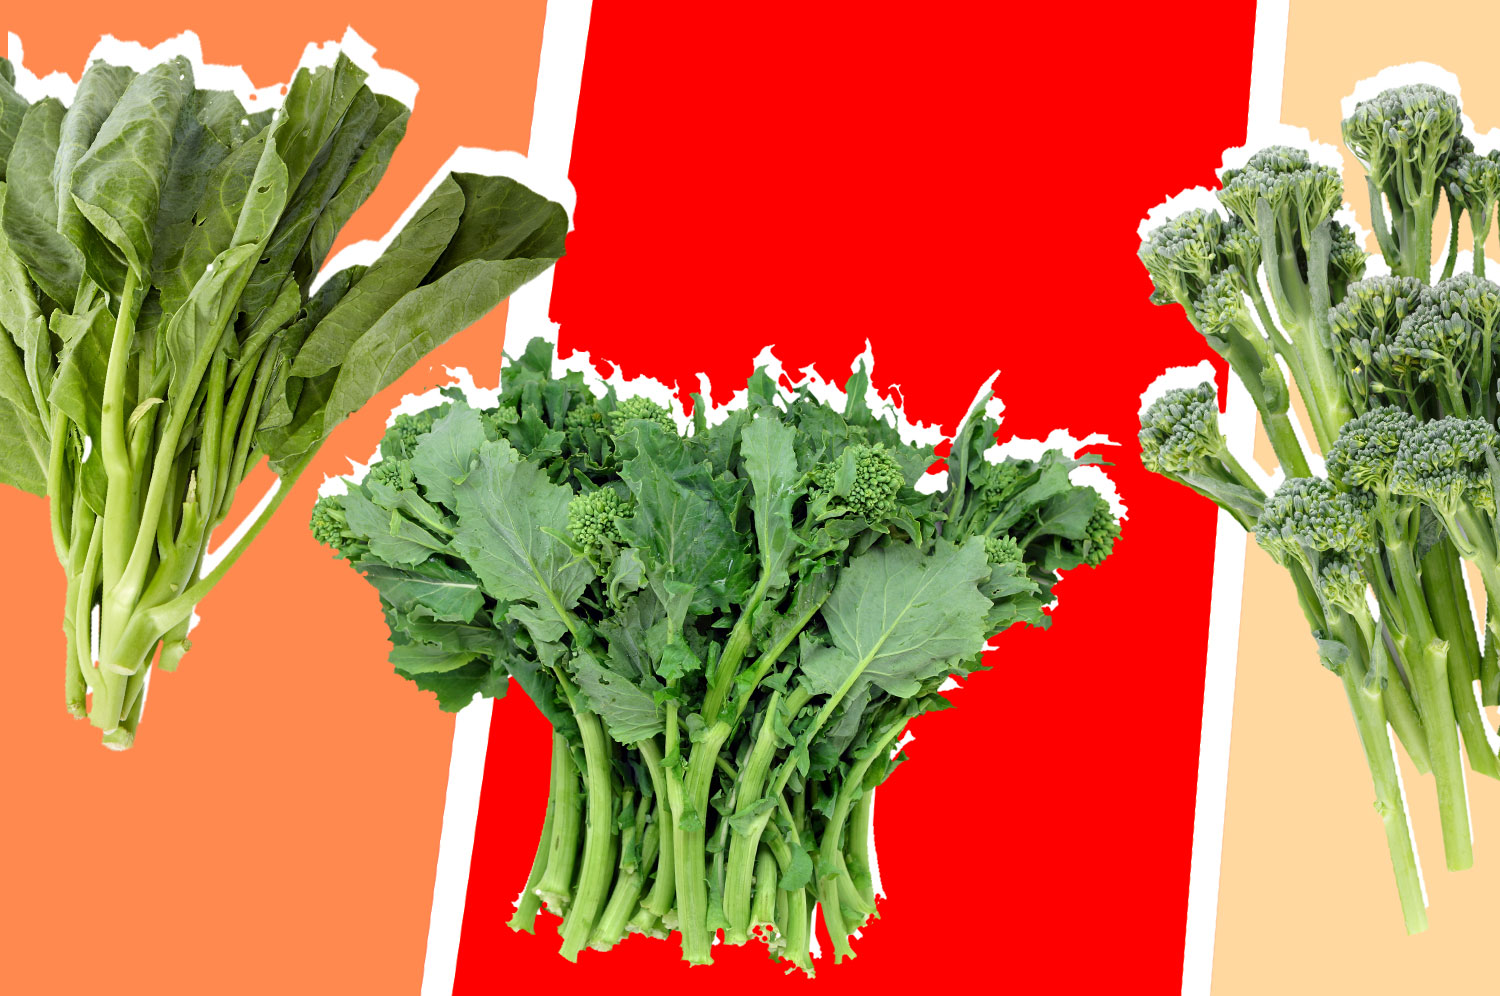 A collage of broccoli, broccolini, and Chinese broccoli